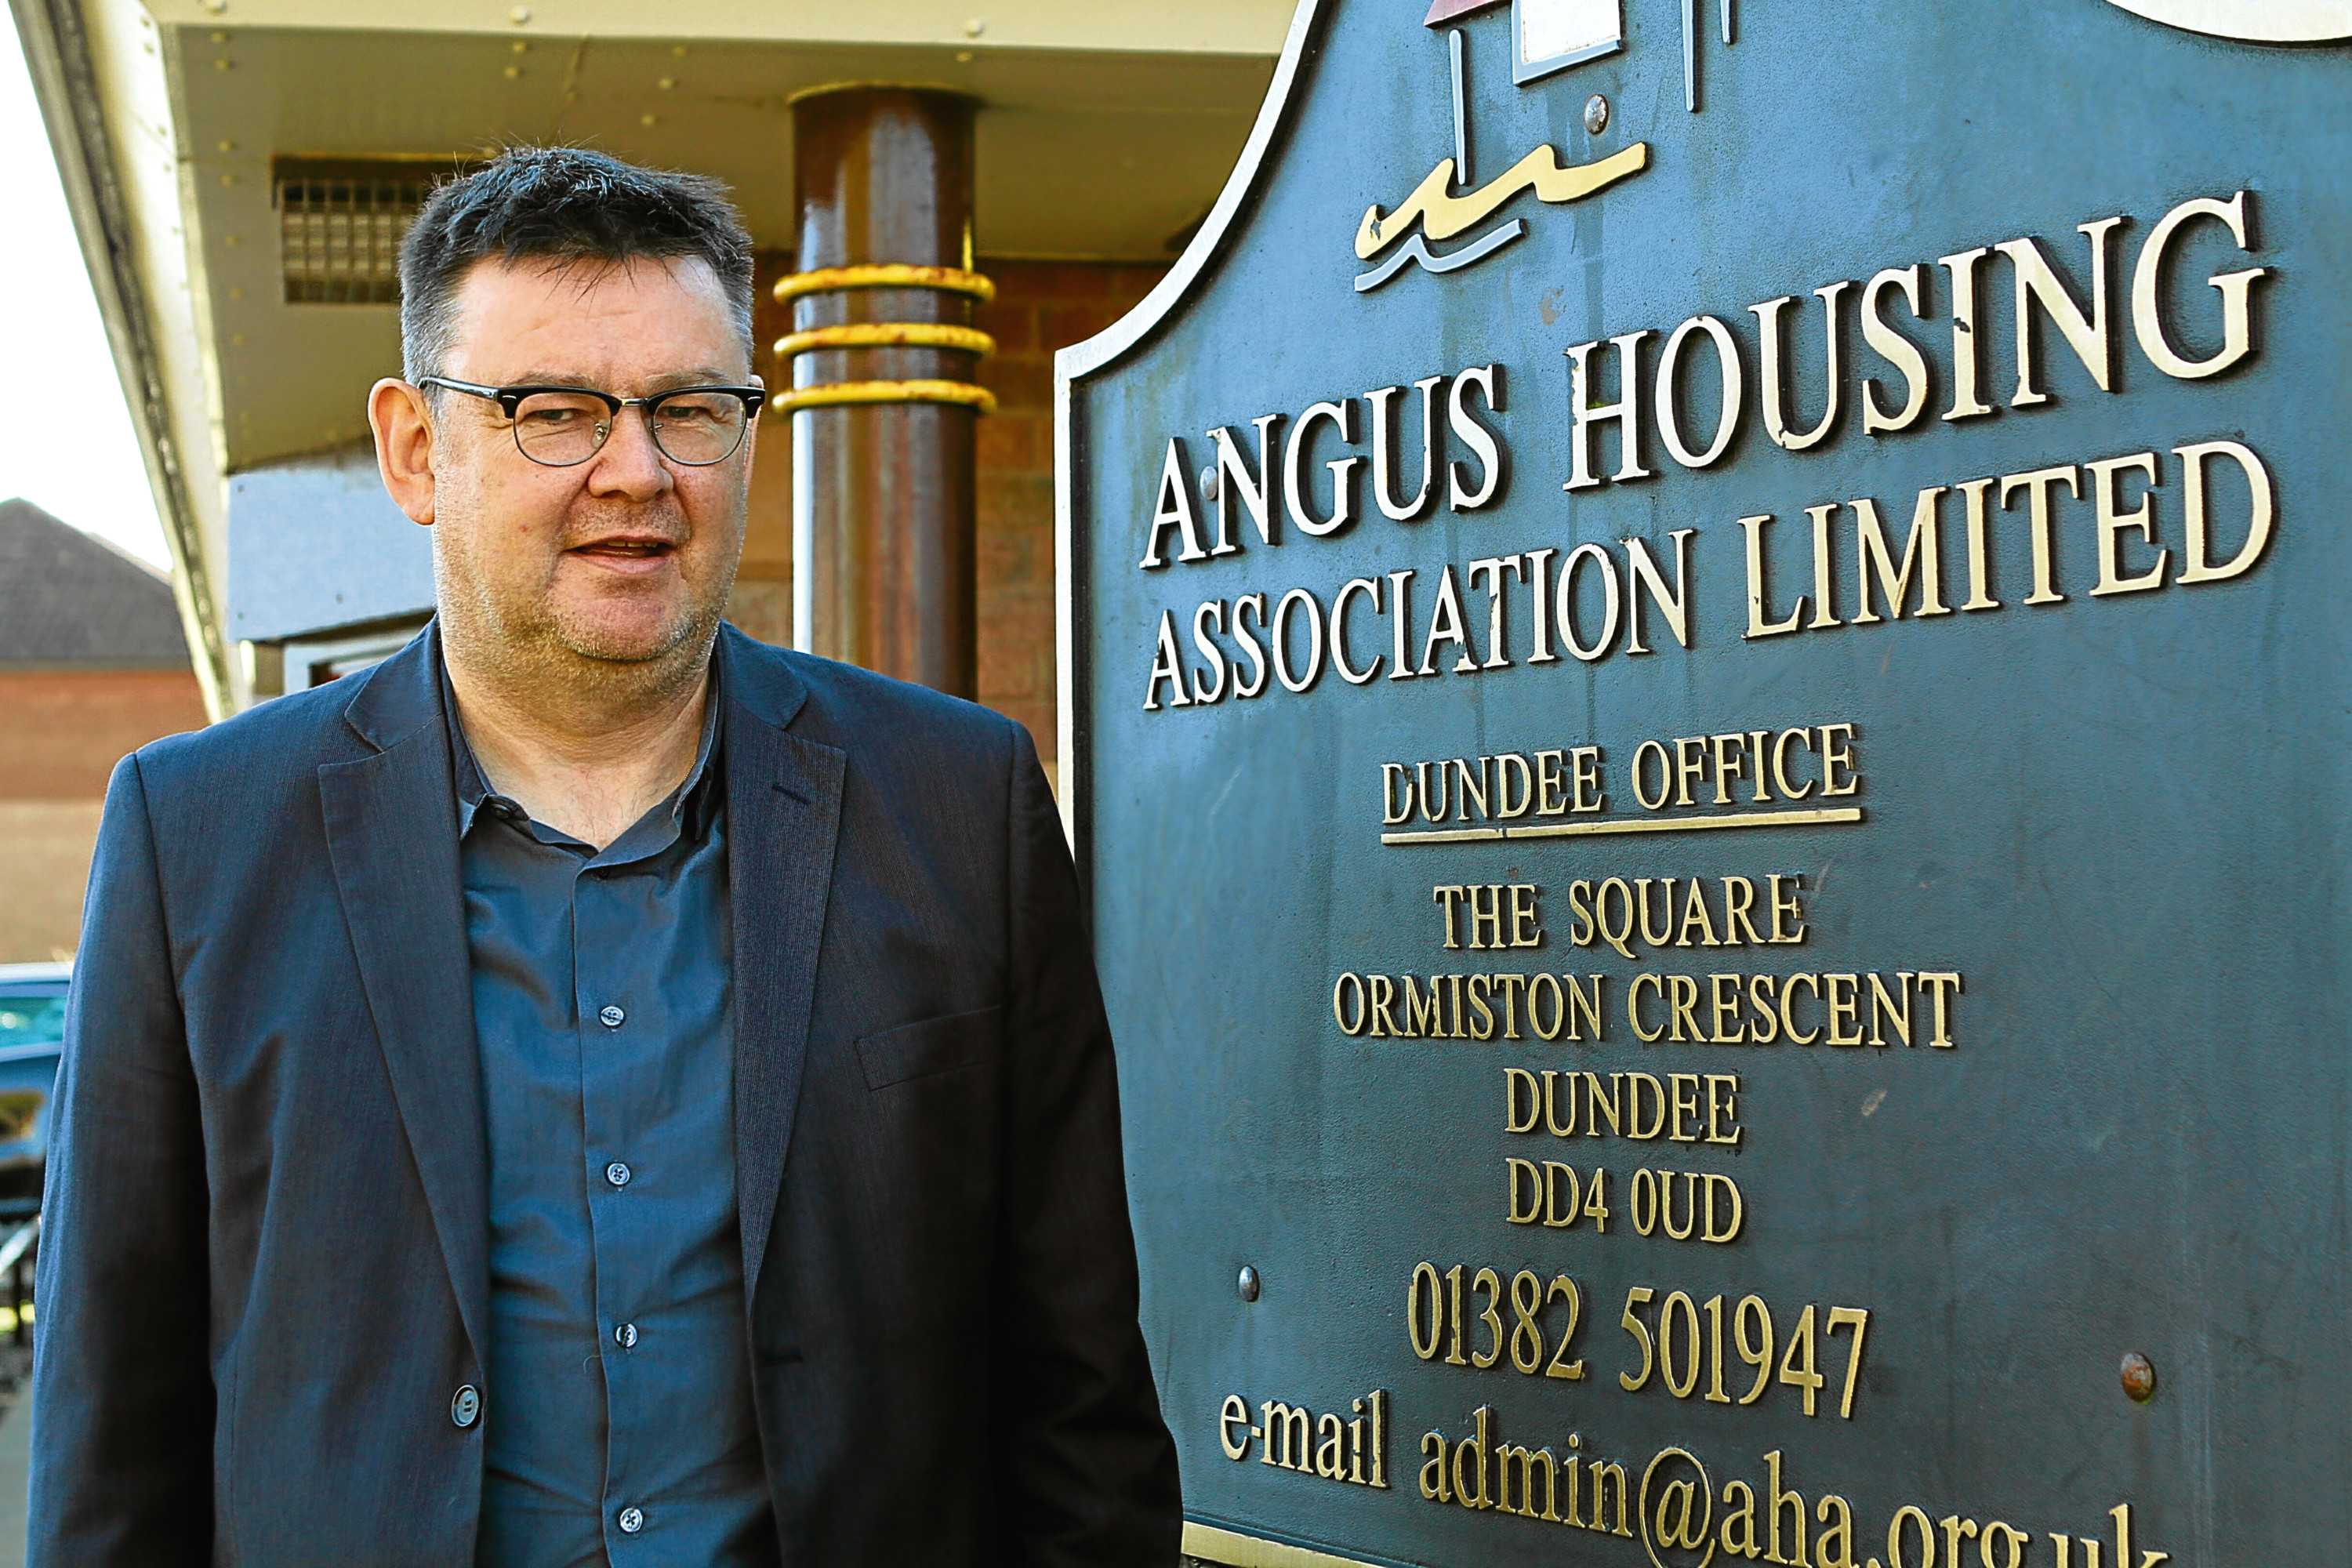 Bruce Forbes, Director of Angus Housing Association